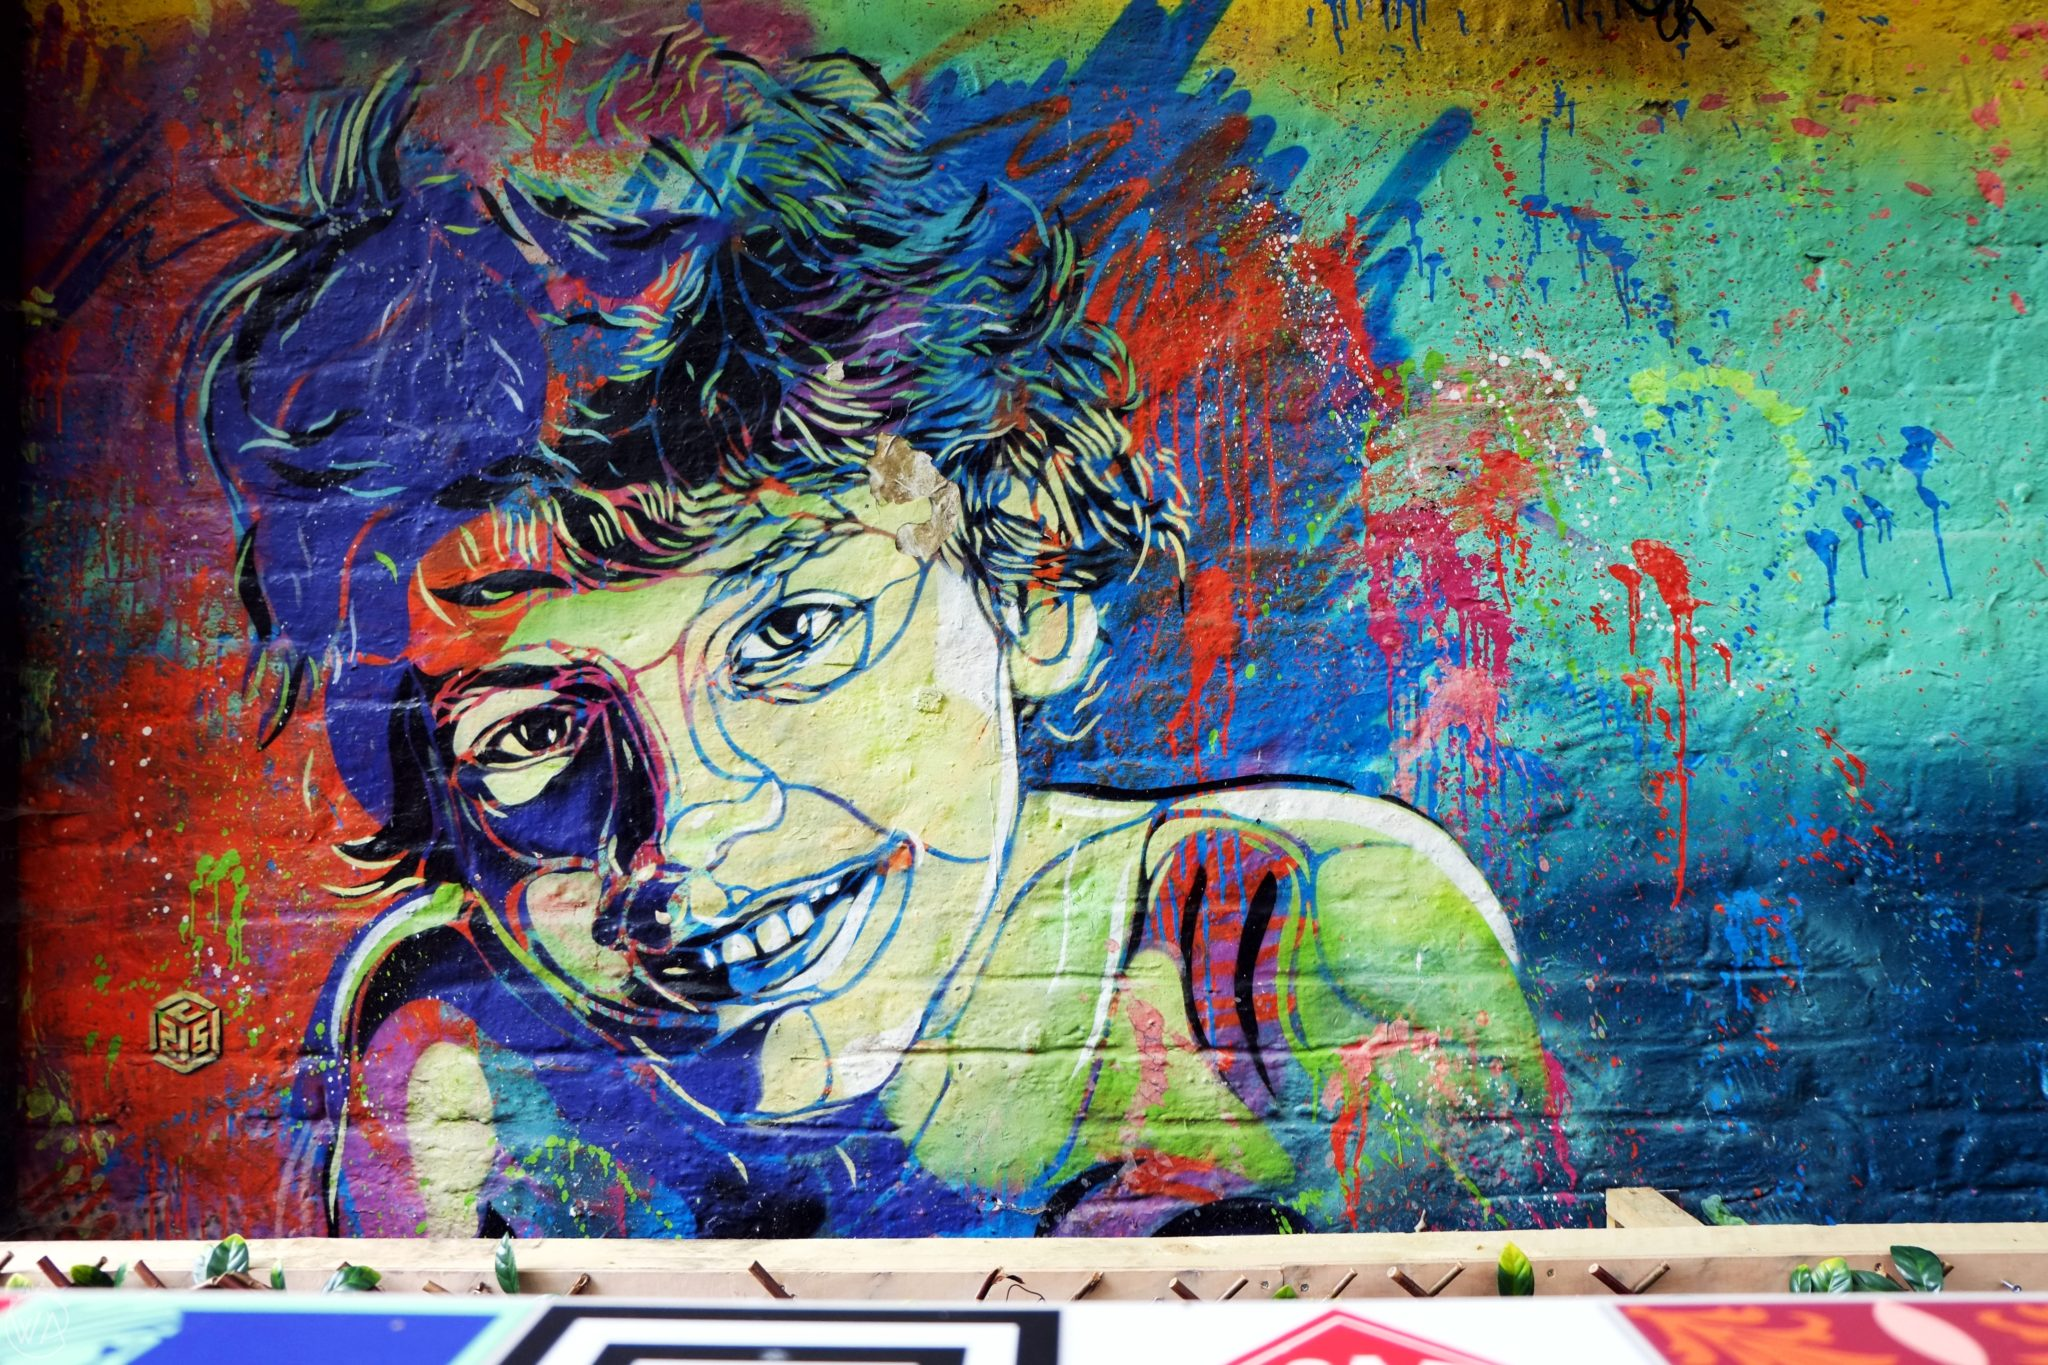 C215 portrait street art Brick lane London